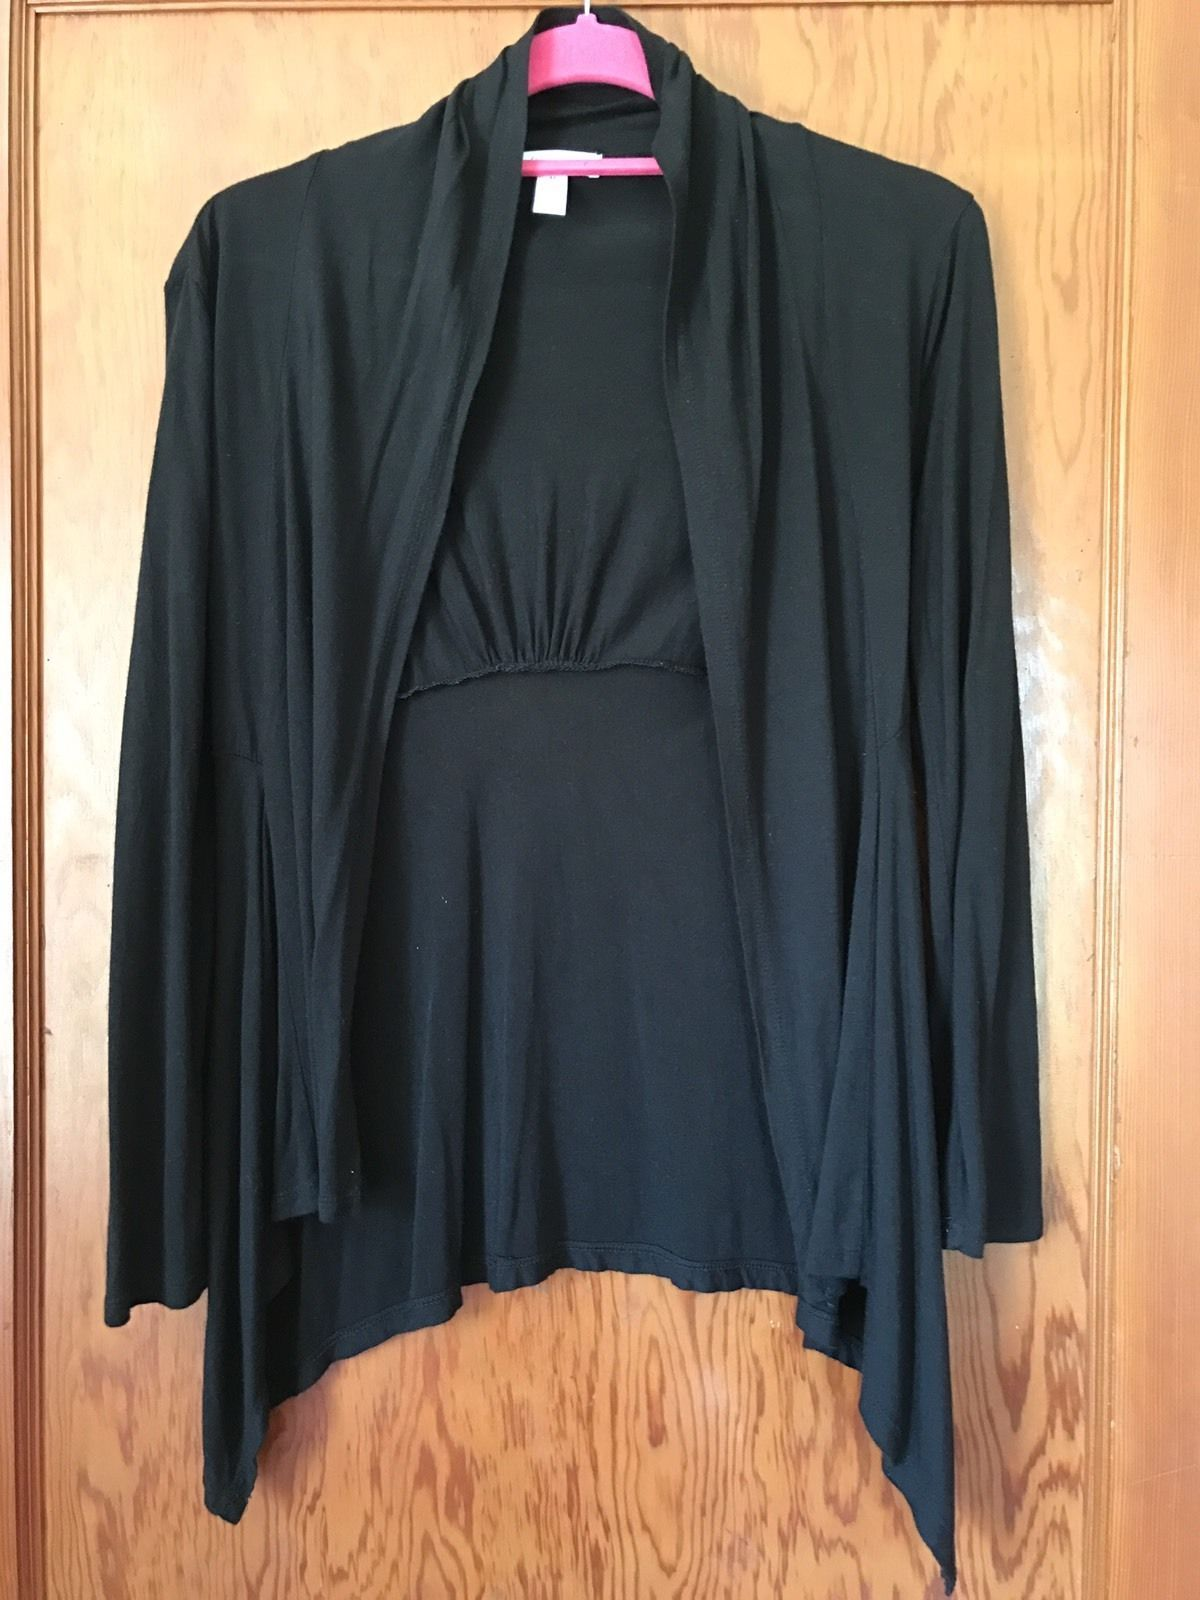 Ambiance Apparel Womens Sheer Open-front Long Sleeve Cardigan size ...